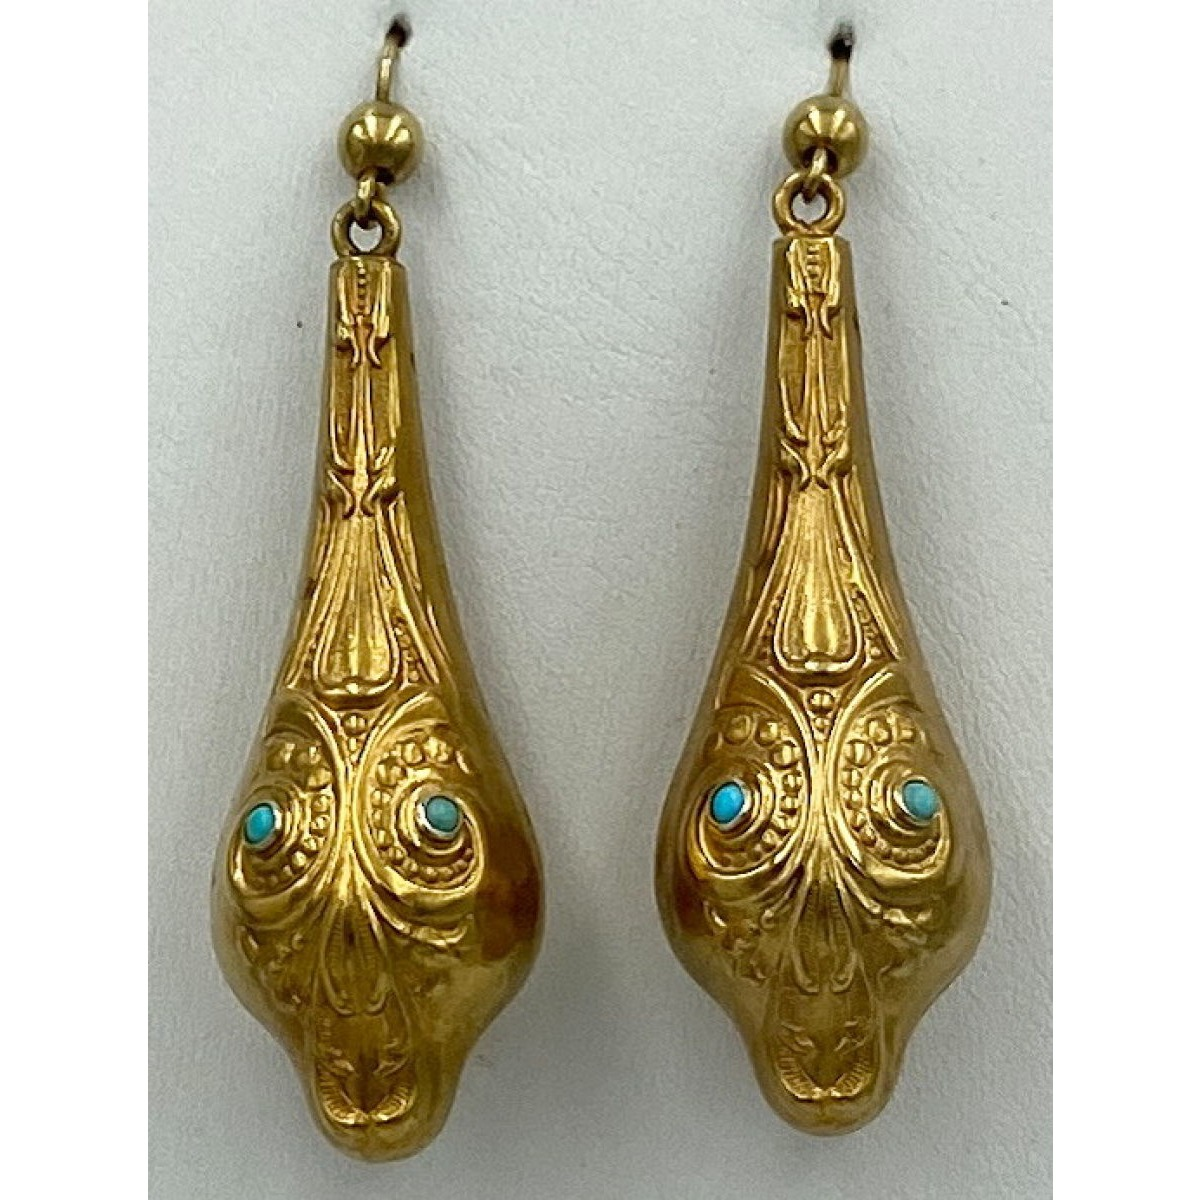 Incredible Statement Long, Hollow Engraved Antique English Gold Earrings with Turquoise